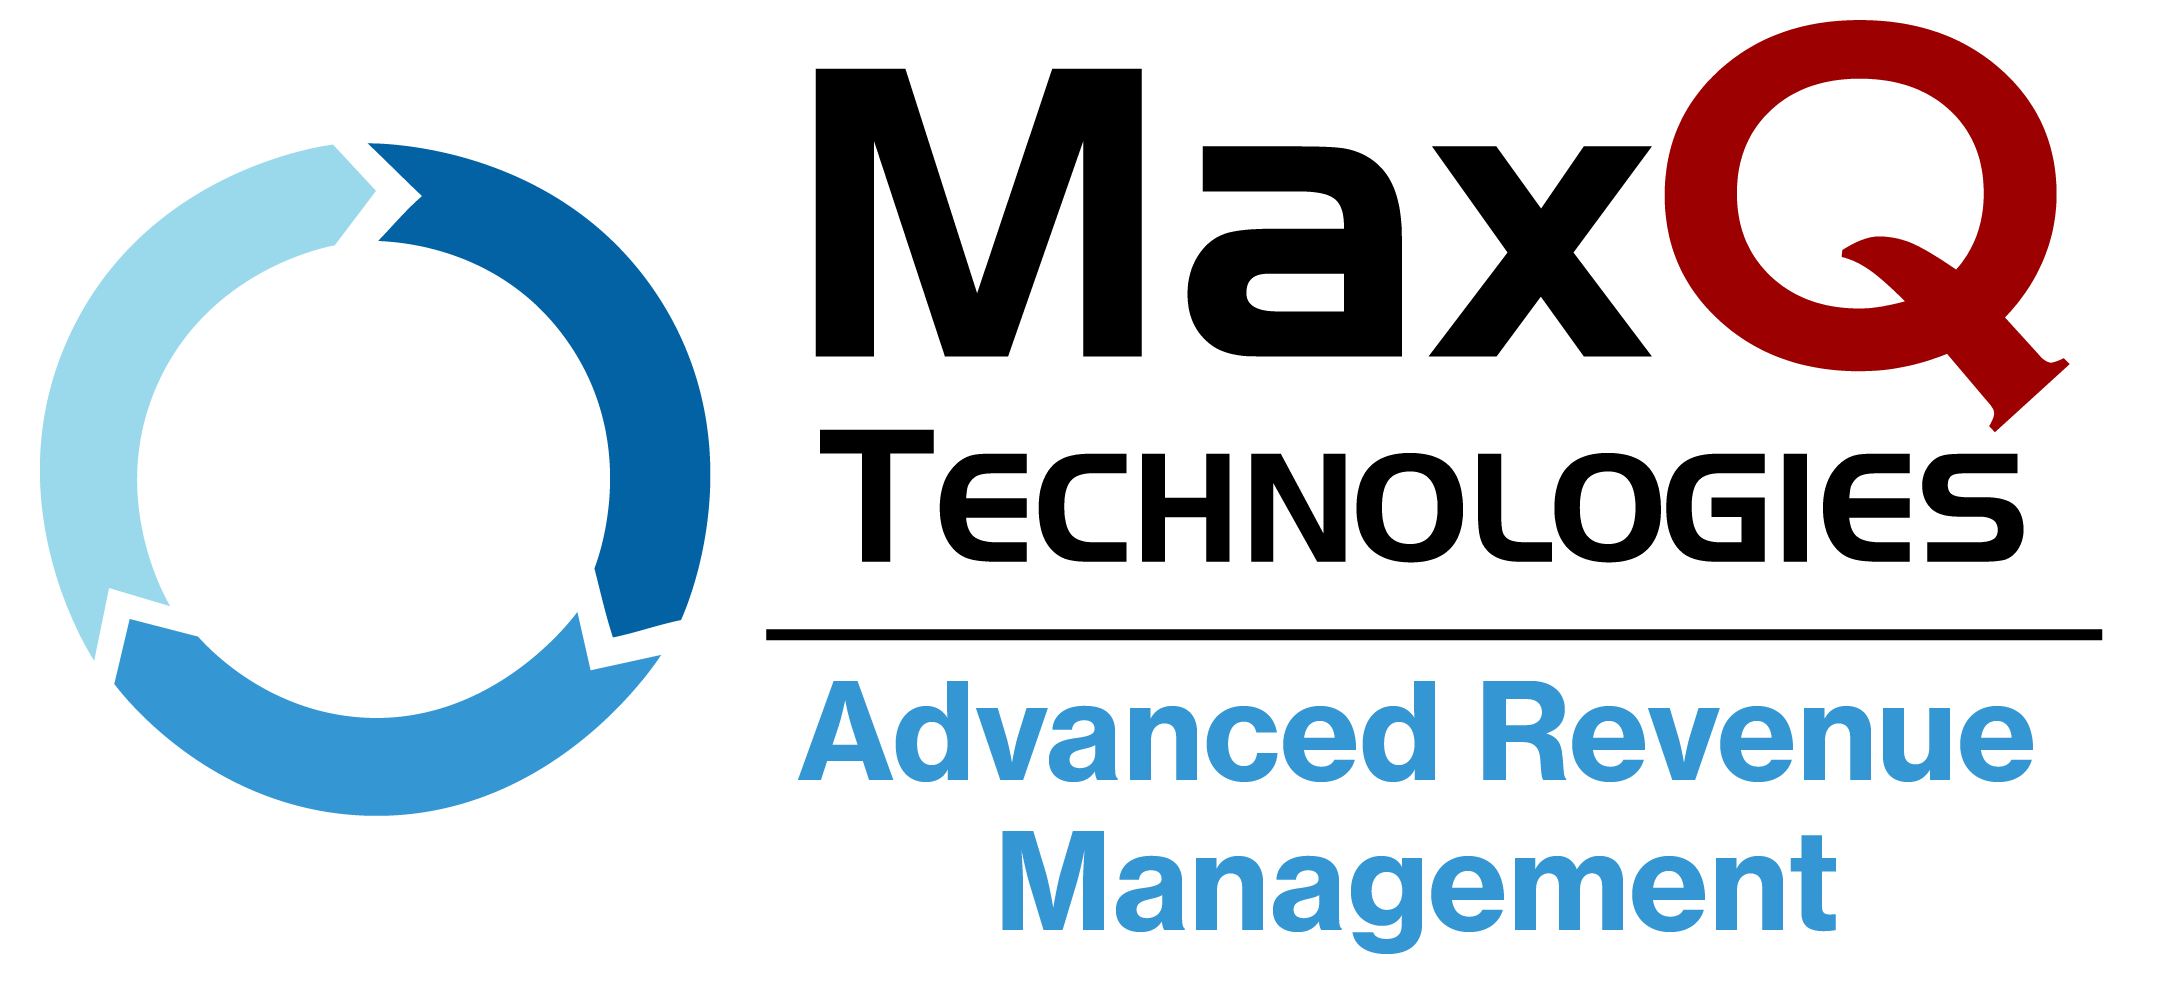 MaxQ Technologies - Advanced Revenue Management (ARM)